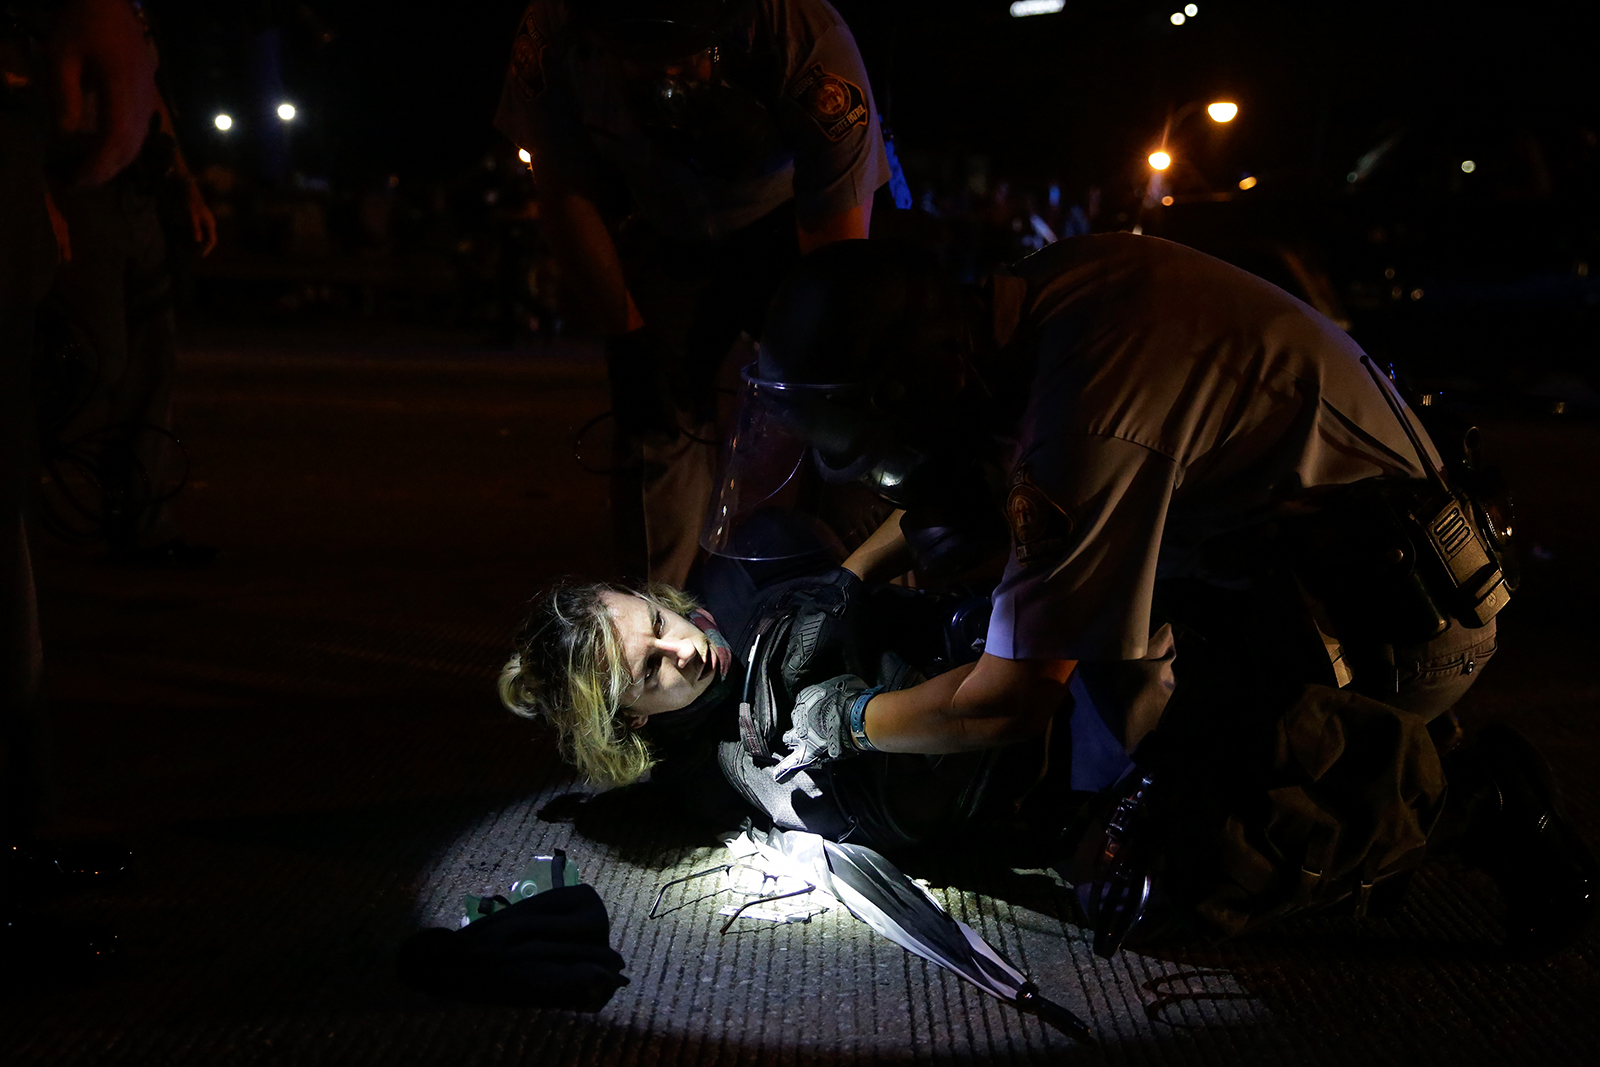 A person is detained during protests on Saturday, June 13, near the Atlanta Wendy's where Rayshard Brooks was shot and killed by police Friday evening following a struggle in the restaurant's drive-thru line in Atlanta.